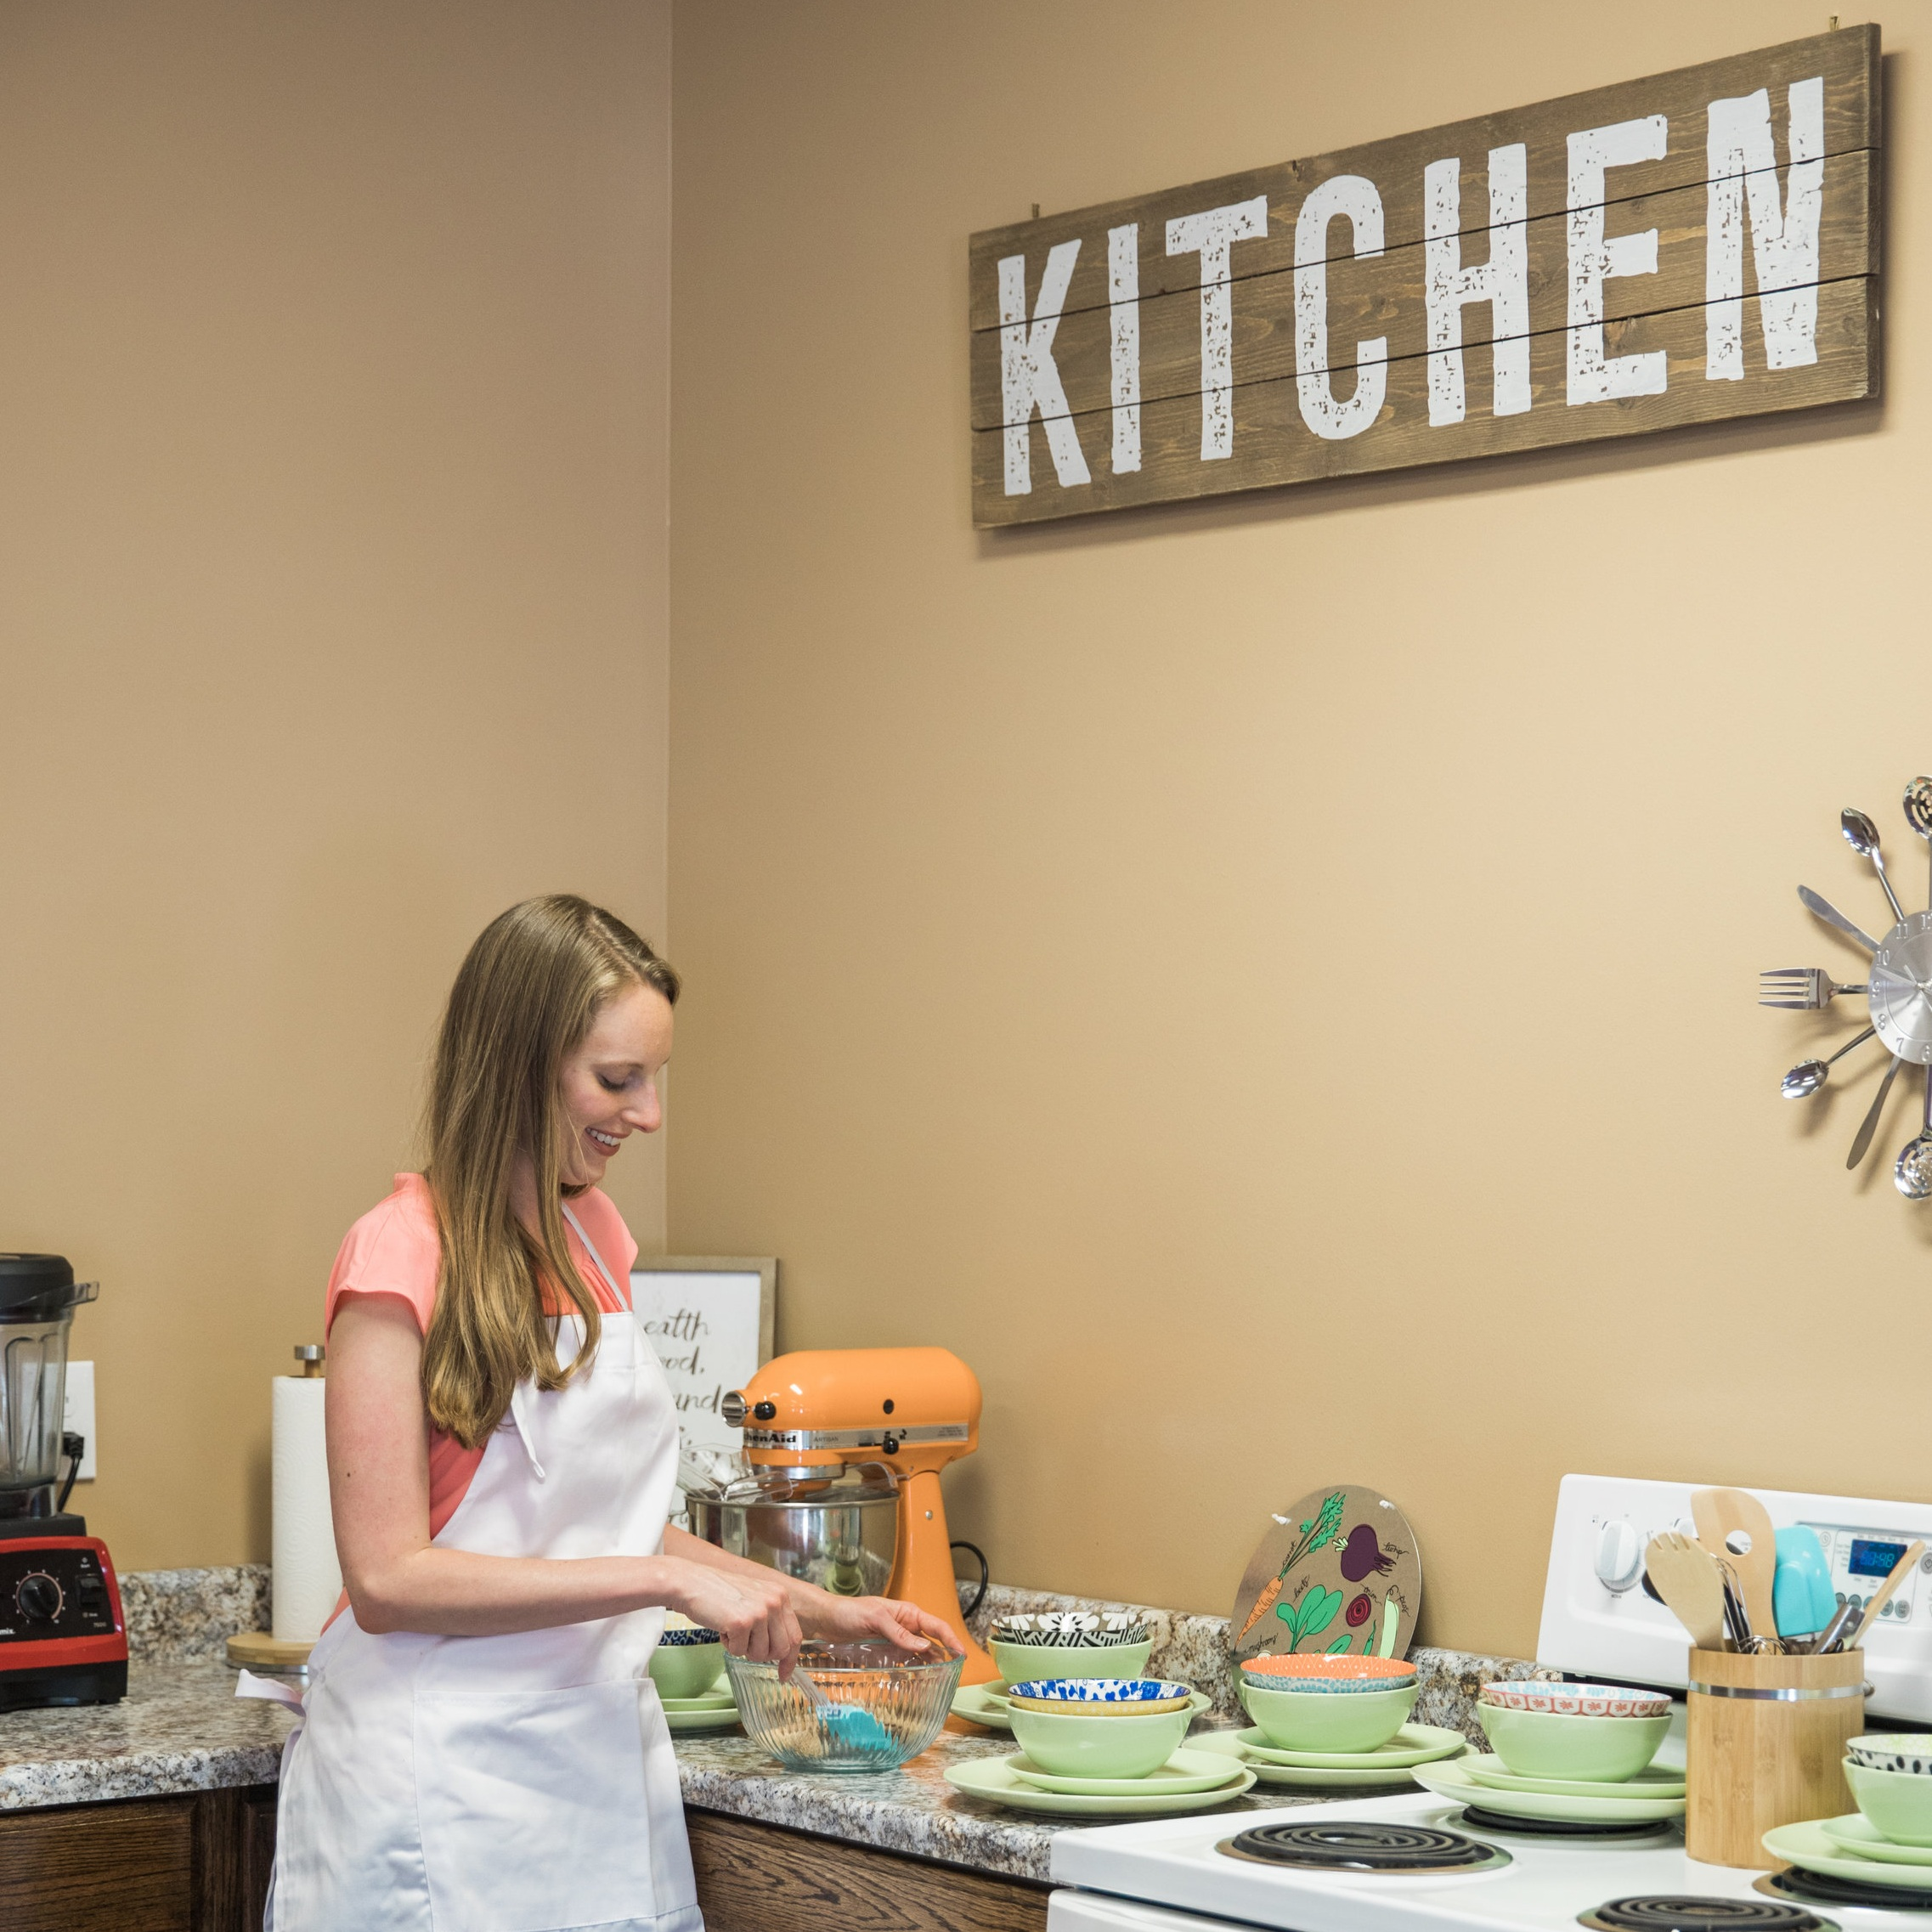 """Dr. Tucker in the """"Active Family Kitchen"""" - our former business in East Tennessee where families could come to learn more about whole food nutrition, feeding a family the healthy way and doctor-supervised cleanse/detox programs coupled with acupuncture, functional medicine and sauna services."""